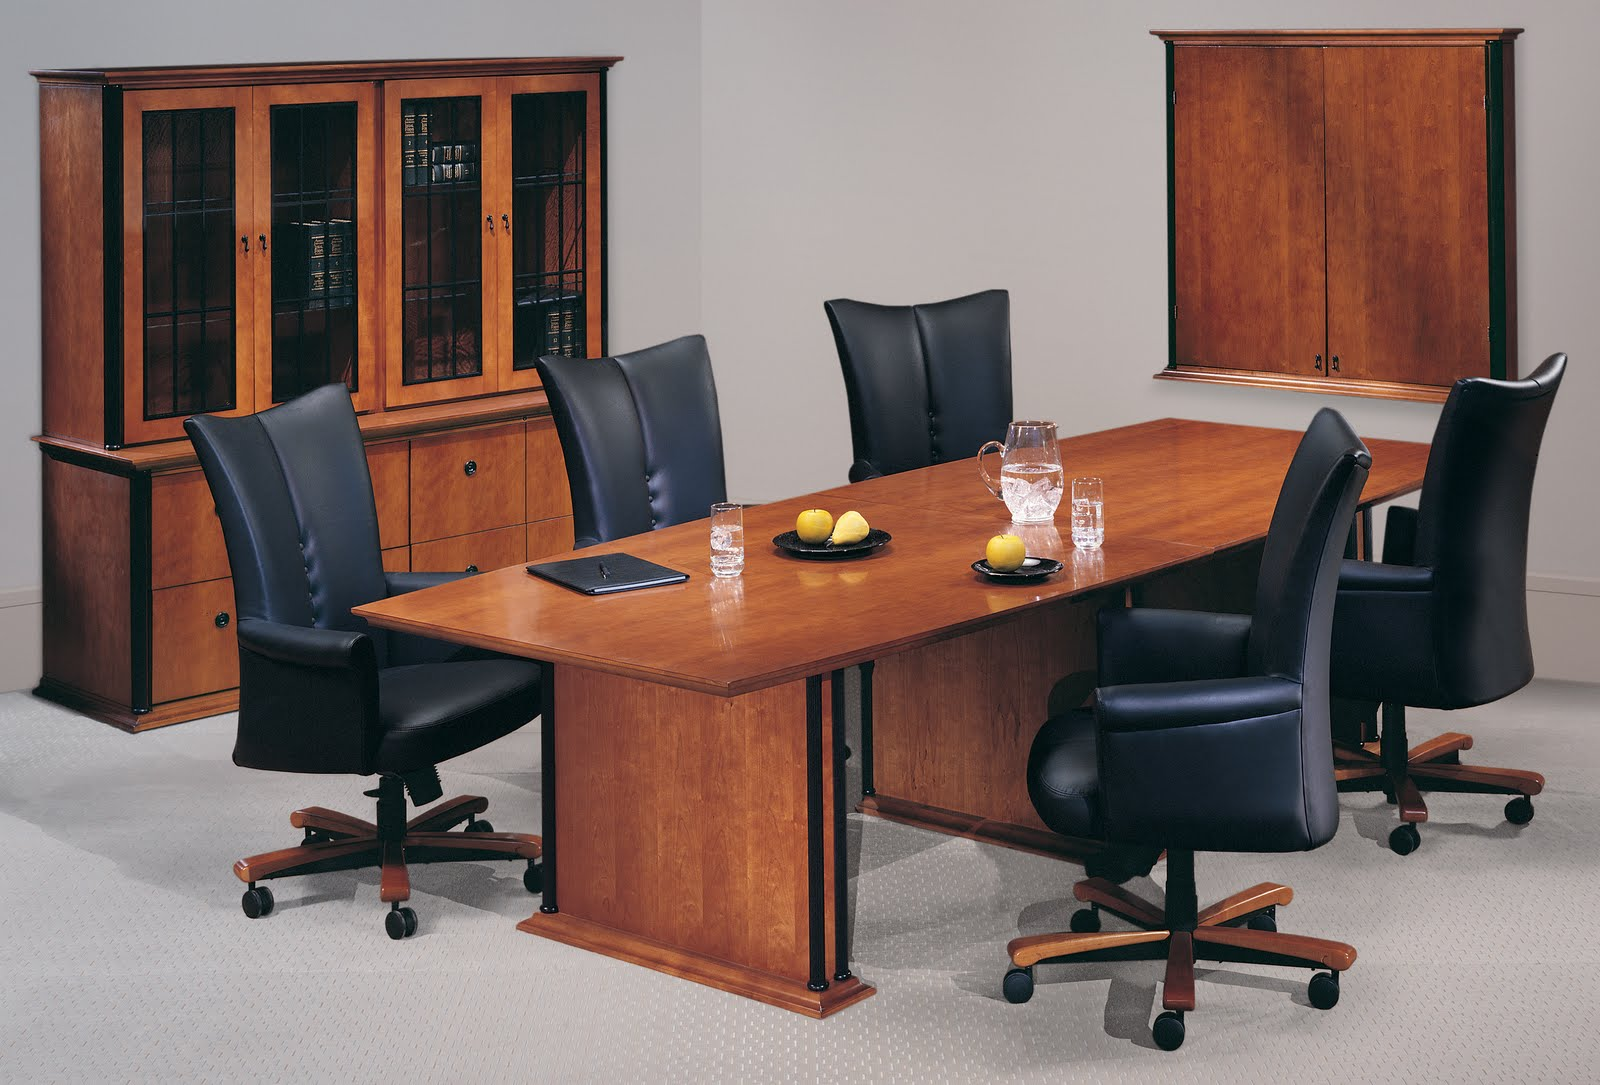 Office Furniture Design Ideas | fashion dresses and shoes-3.bp.blogspot.com